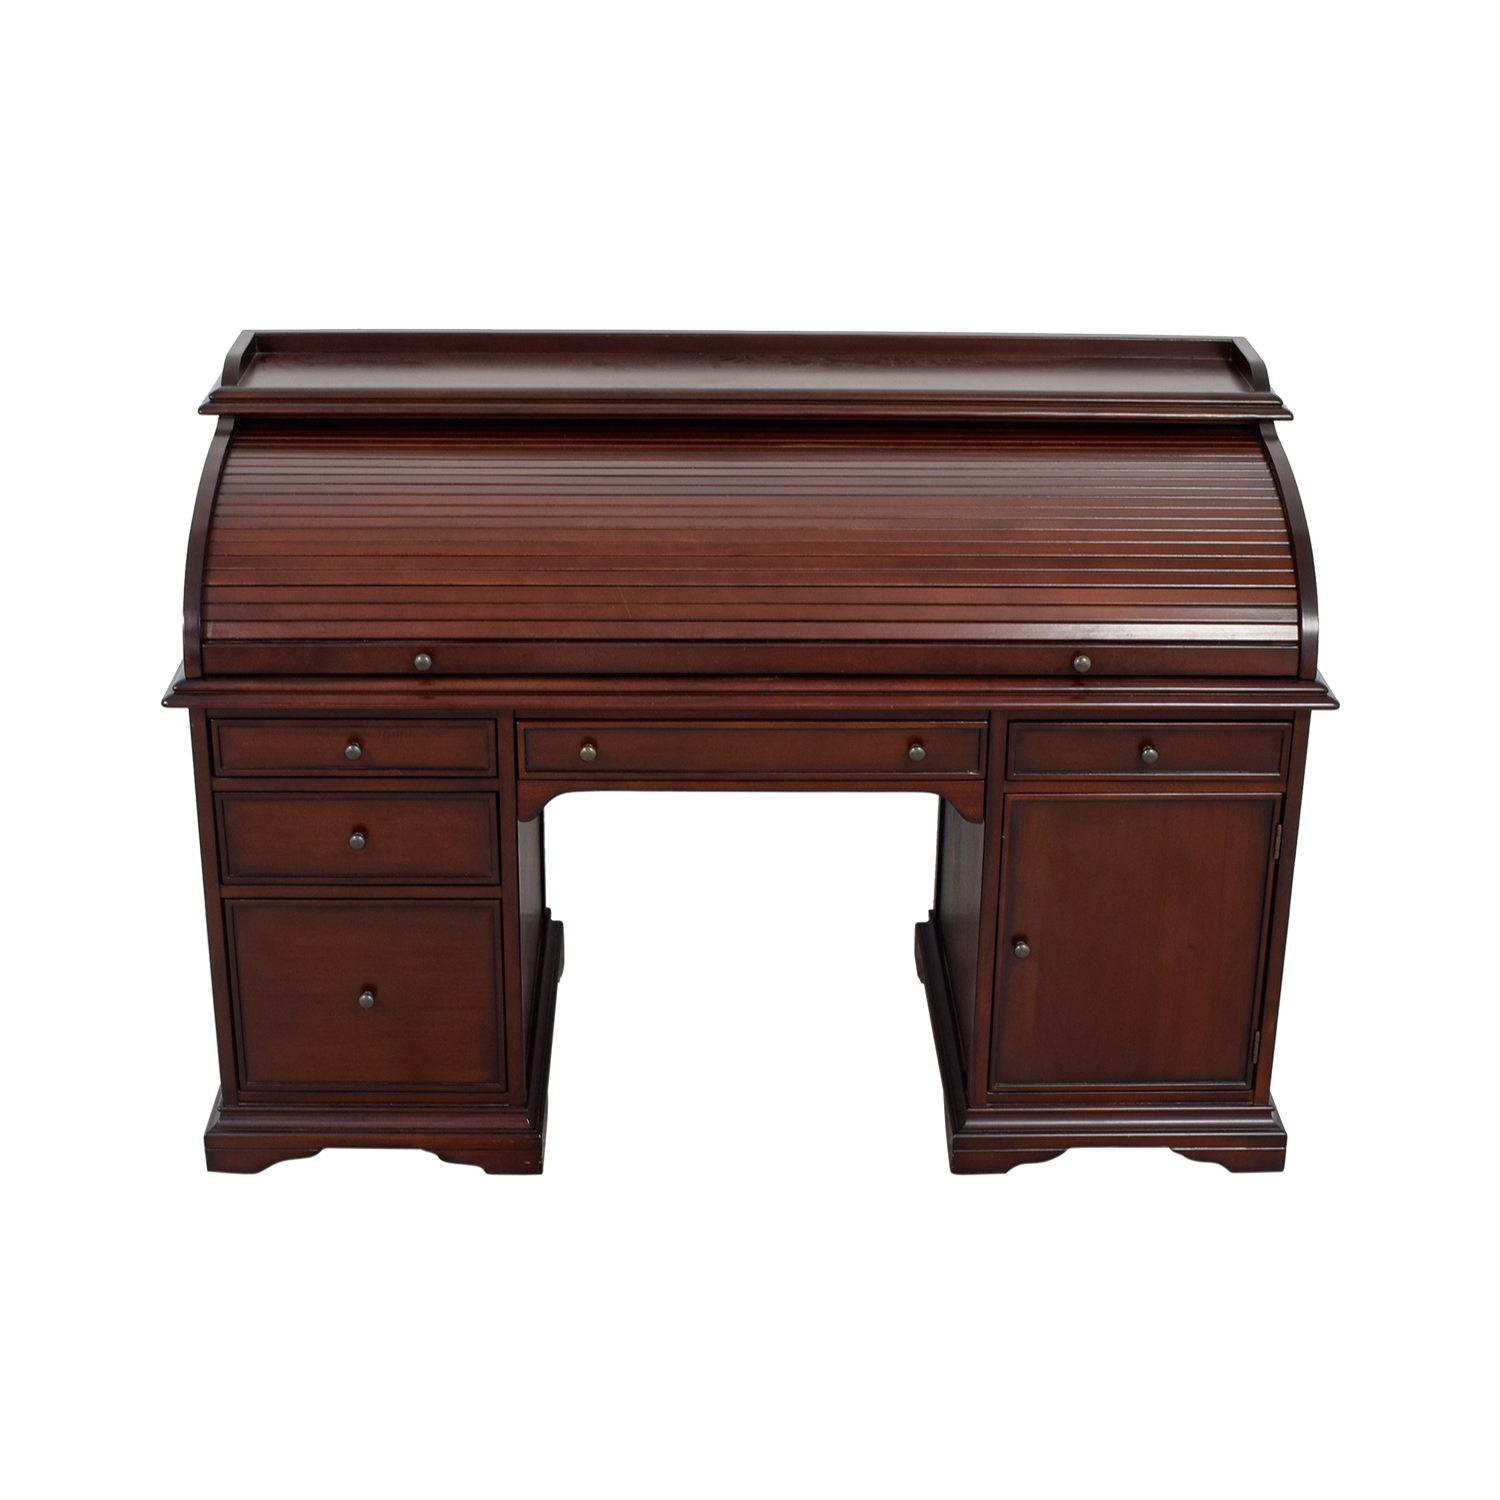 82 Off Pottery Barn Pottery Barn Wood Roll Top Desk